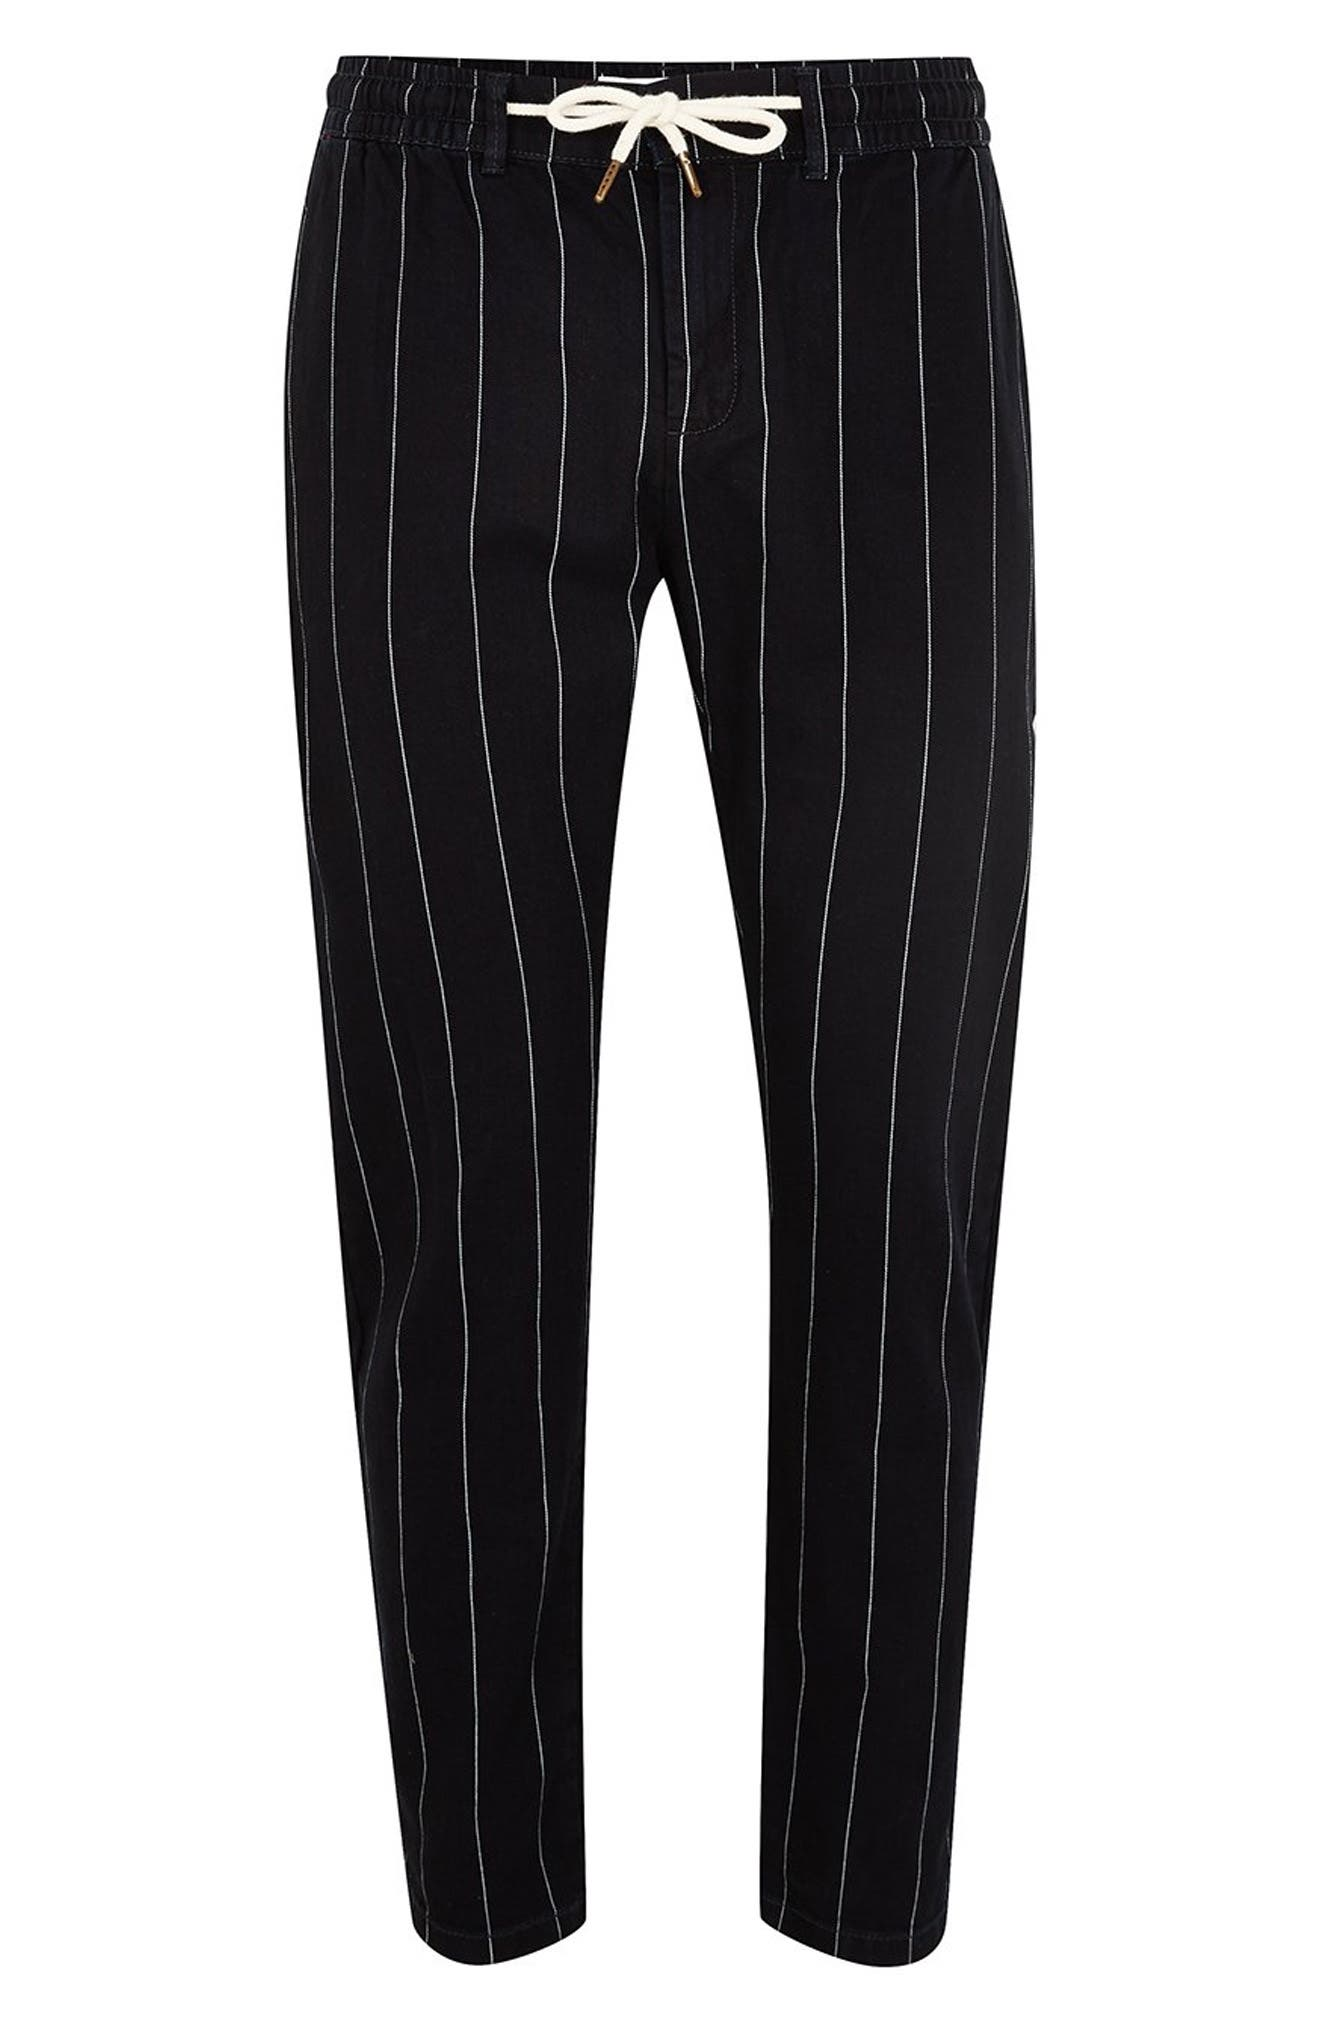 Pinstripe Skinny Trousers,                             Alternate thumbnail 4, color,                             411